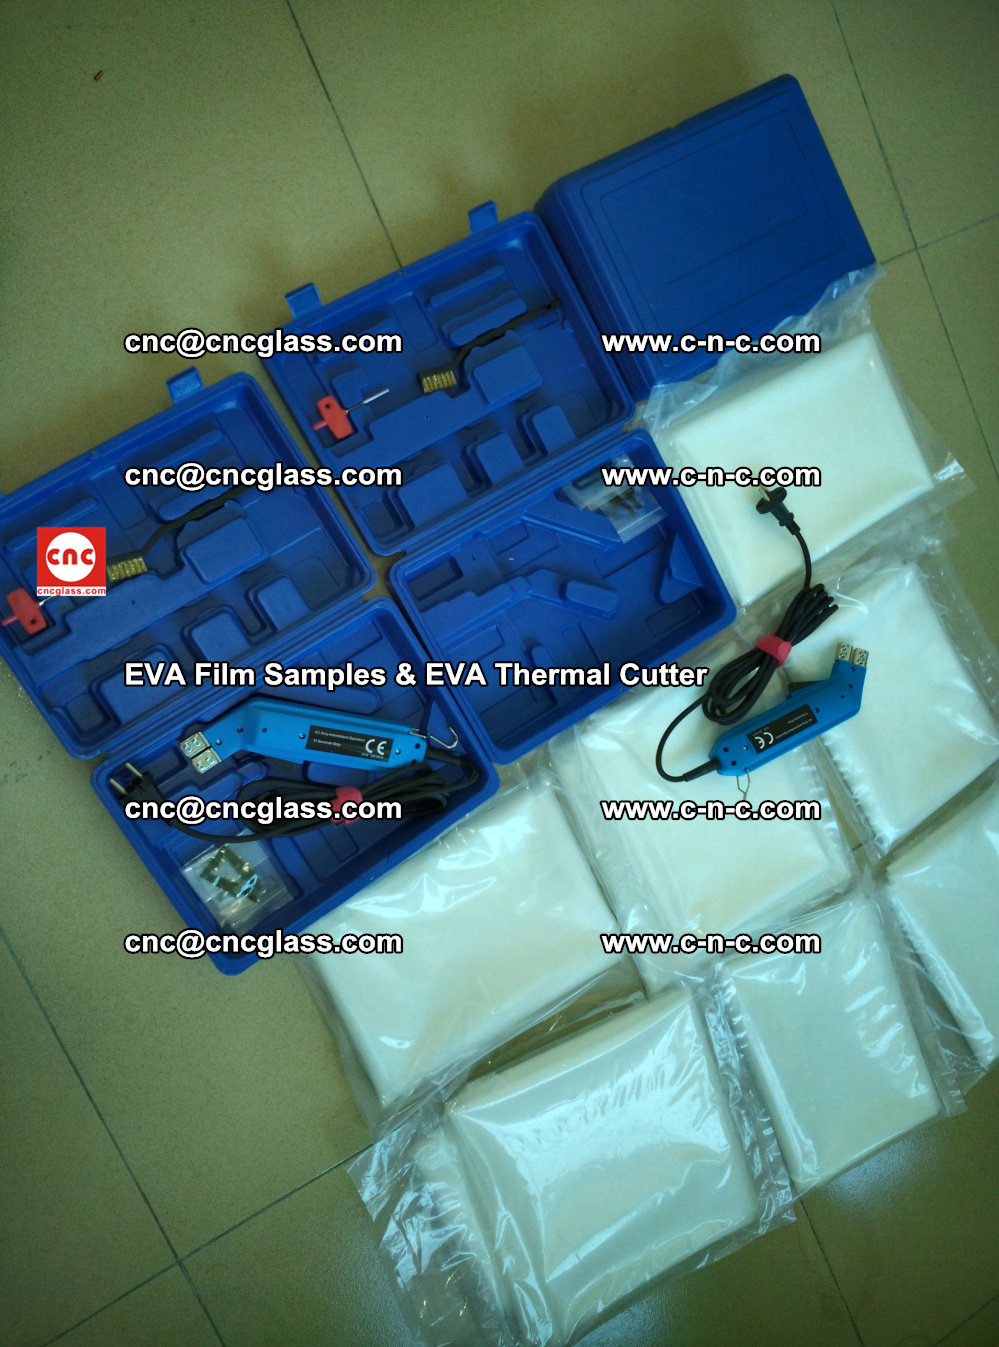 EVAFORCE SUPER CLEAR EVA Film Samples and EVA Thermal Cutter (16)